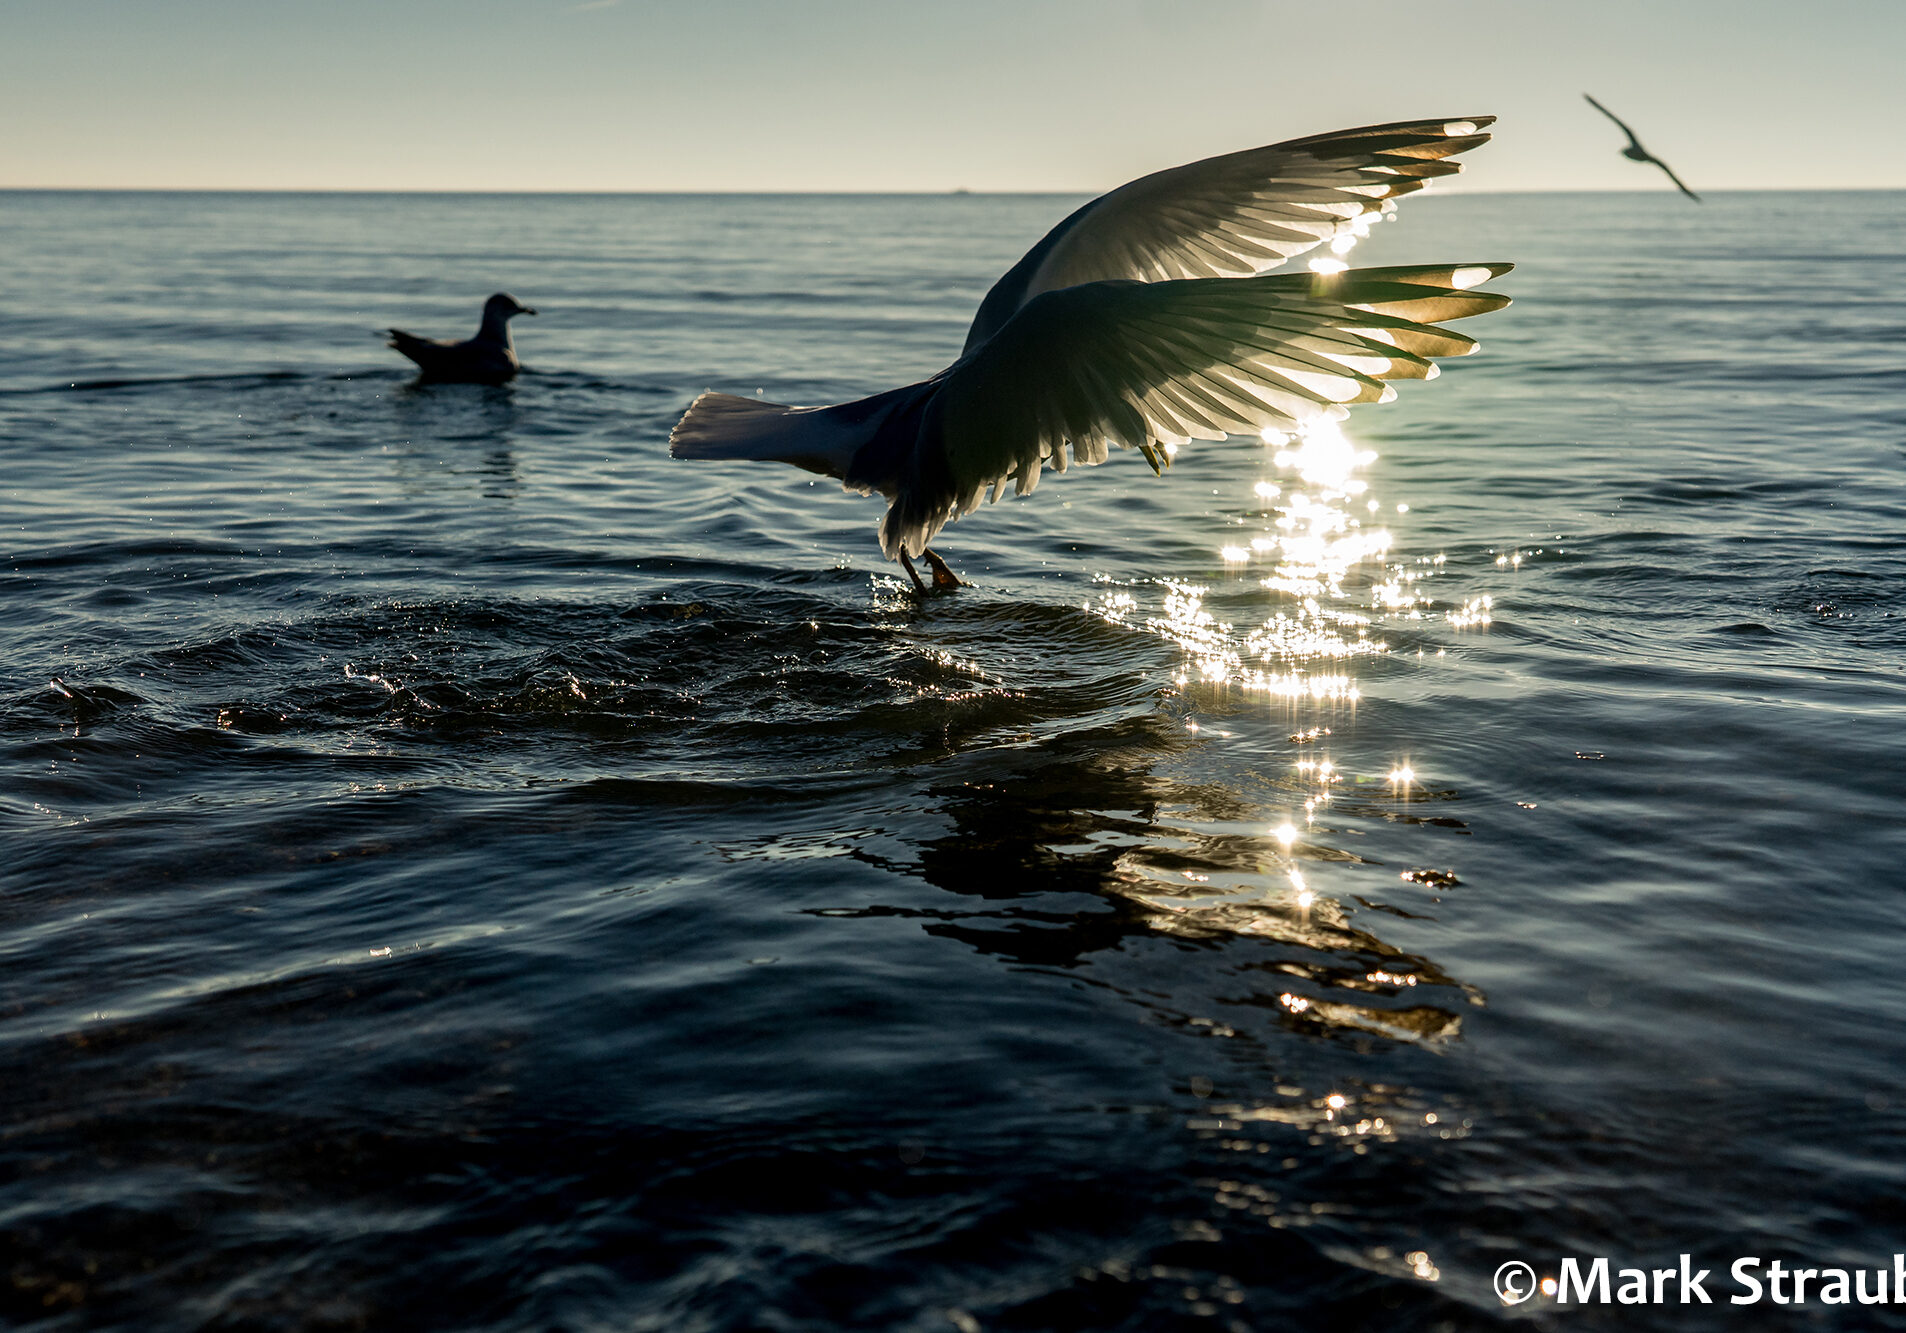 A bird takes off from the water at sundown